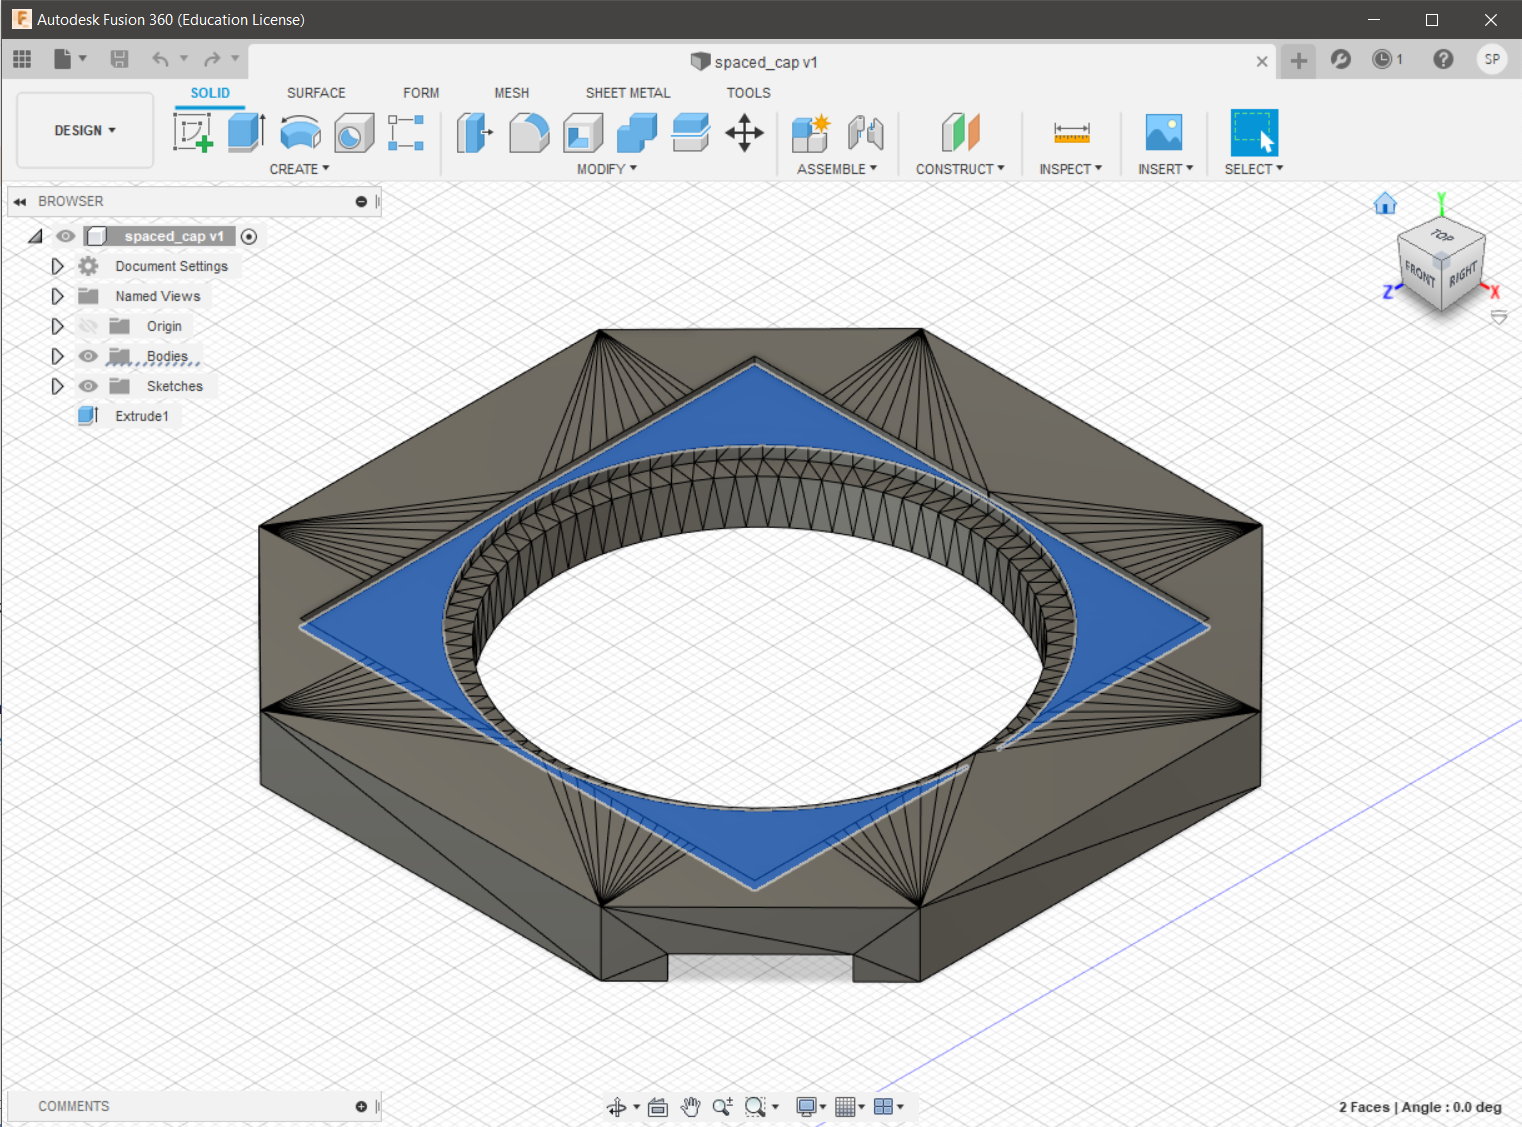 The first, simplest change in Fusion360. A great tool for designing but it isn't suited to edit complex meshes